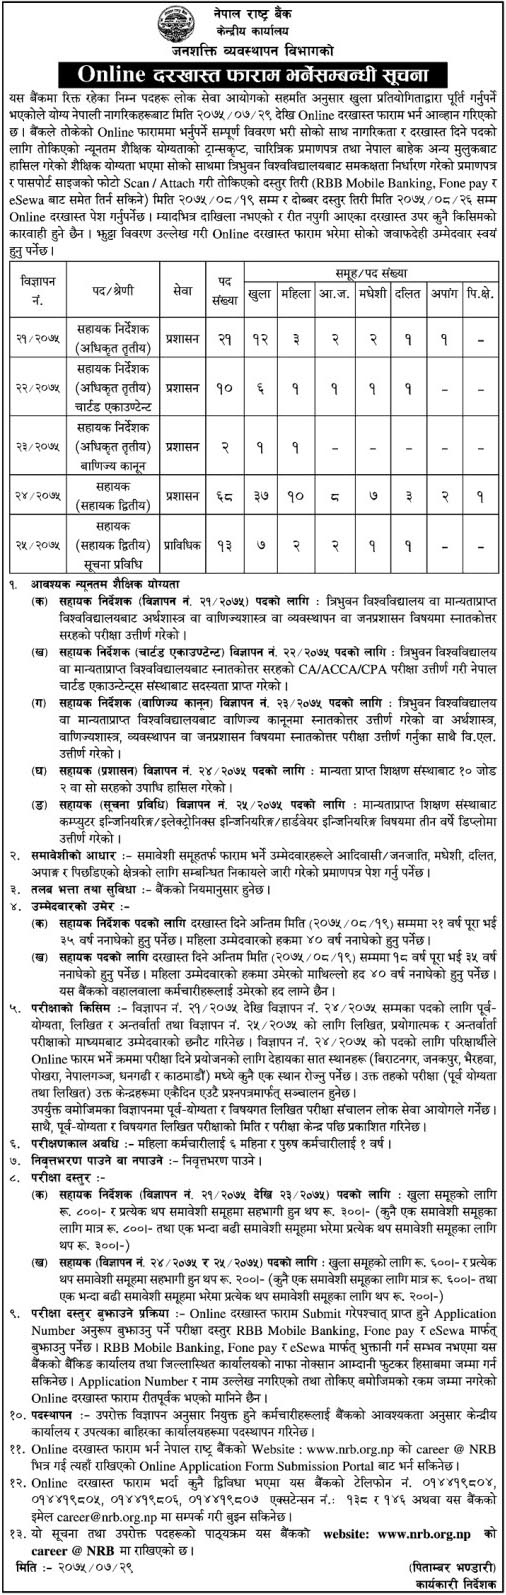 Nepal Rastra Bank Vacancy Announcement Notice